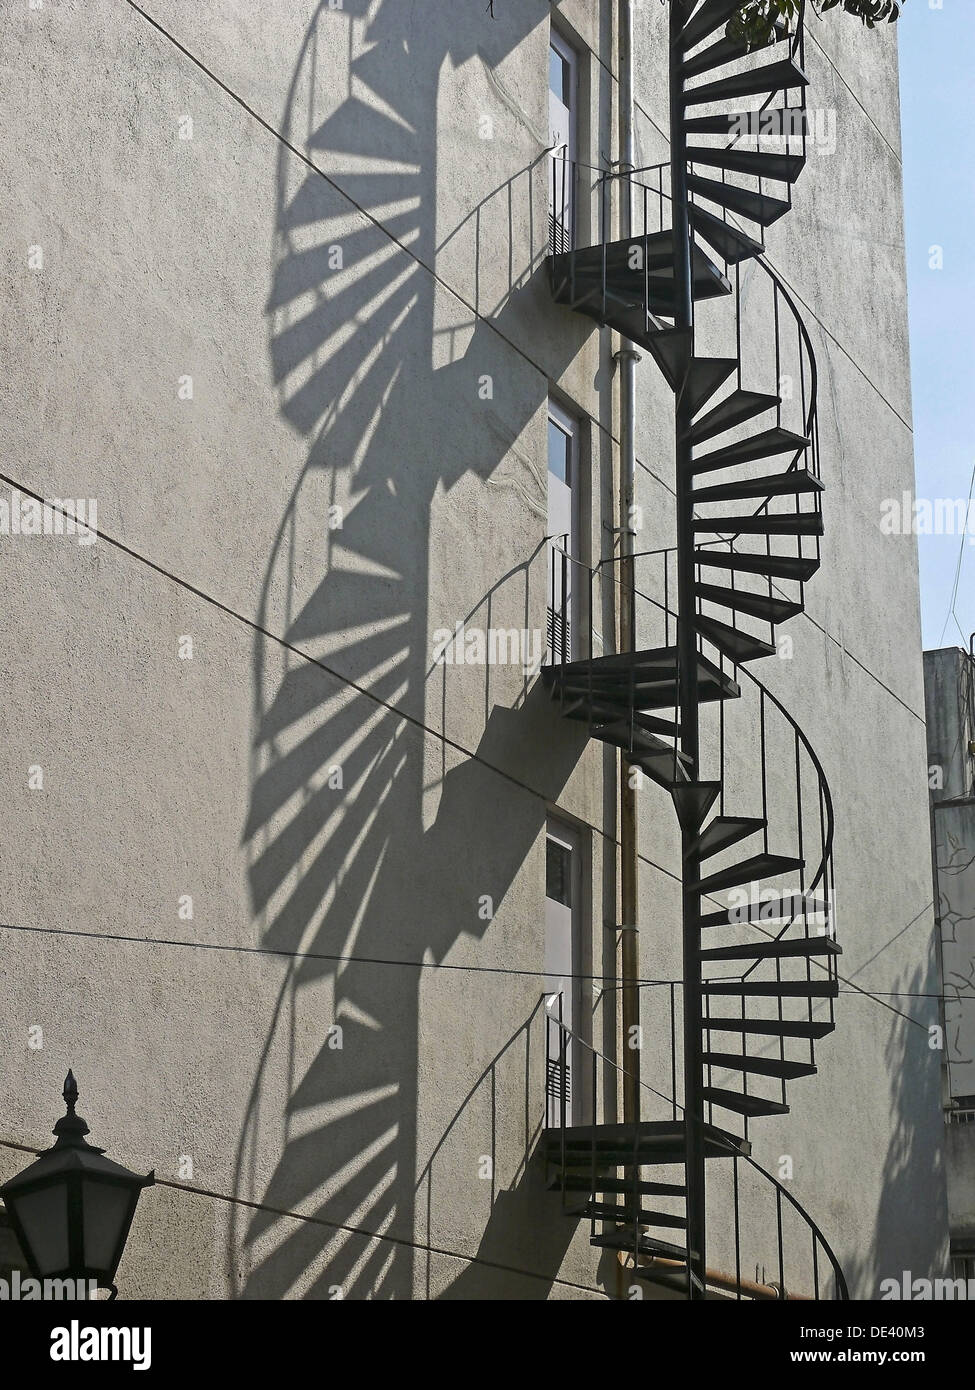 Shadow with a curved staircase made in mild steel - Stock Image